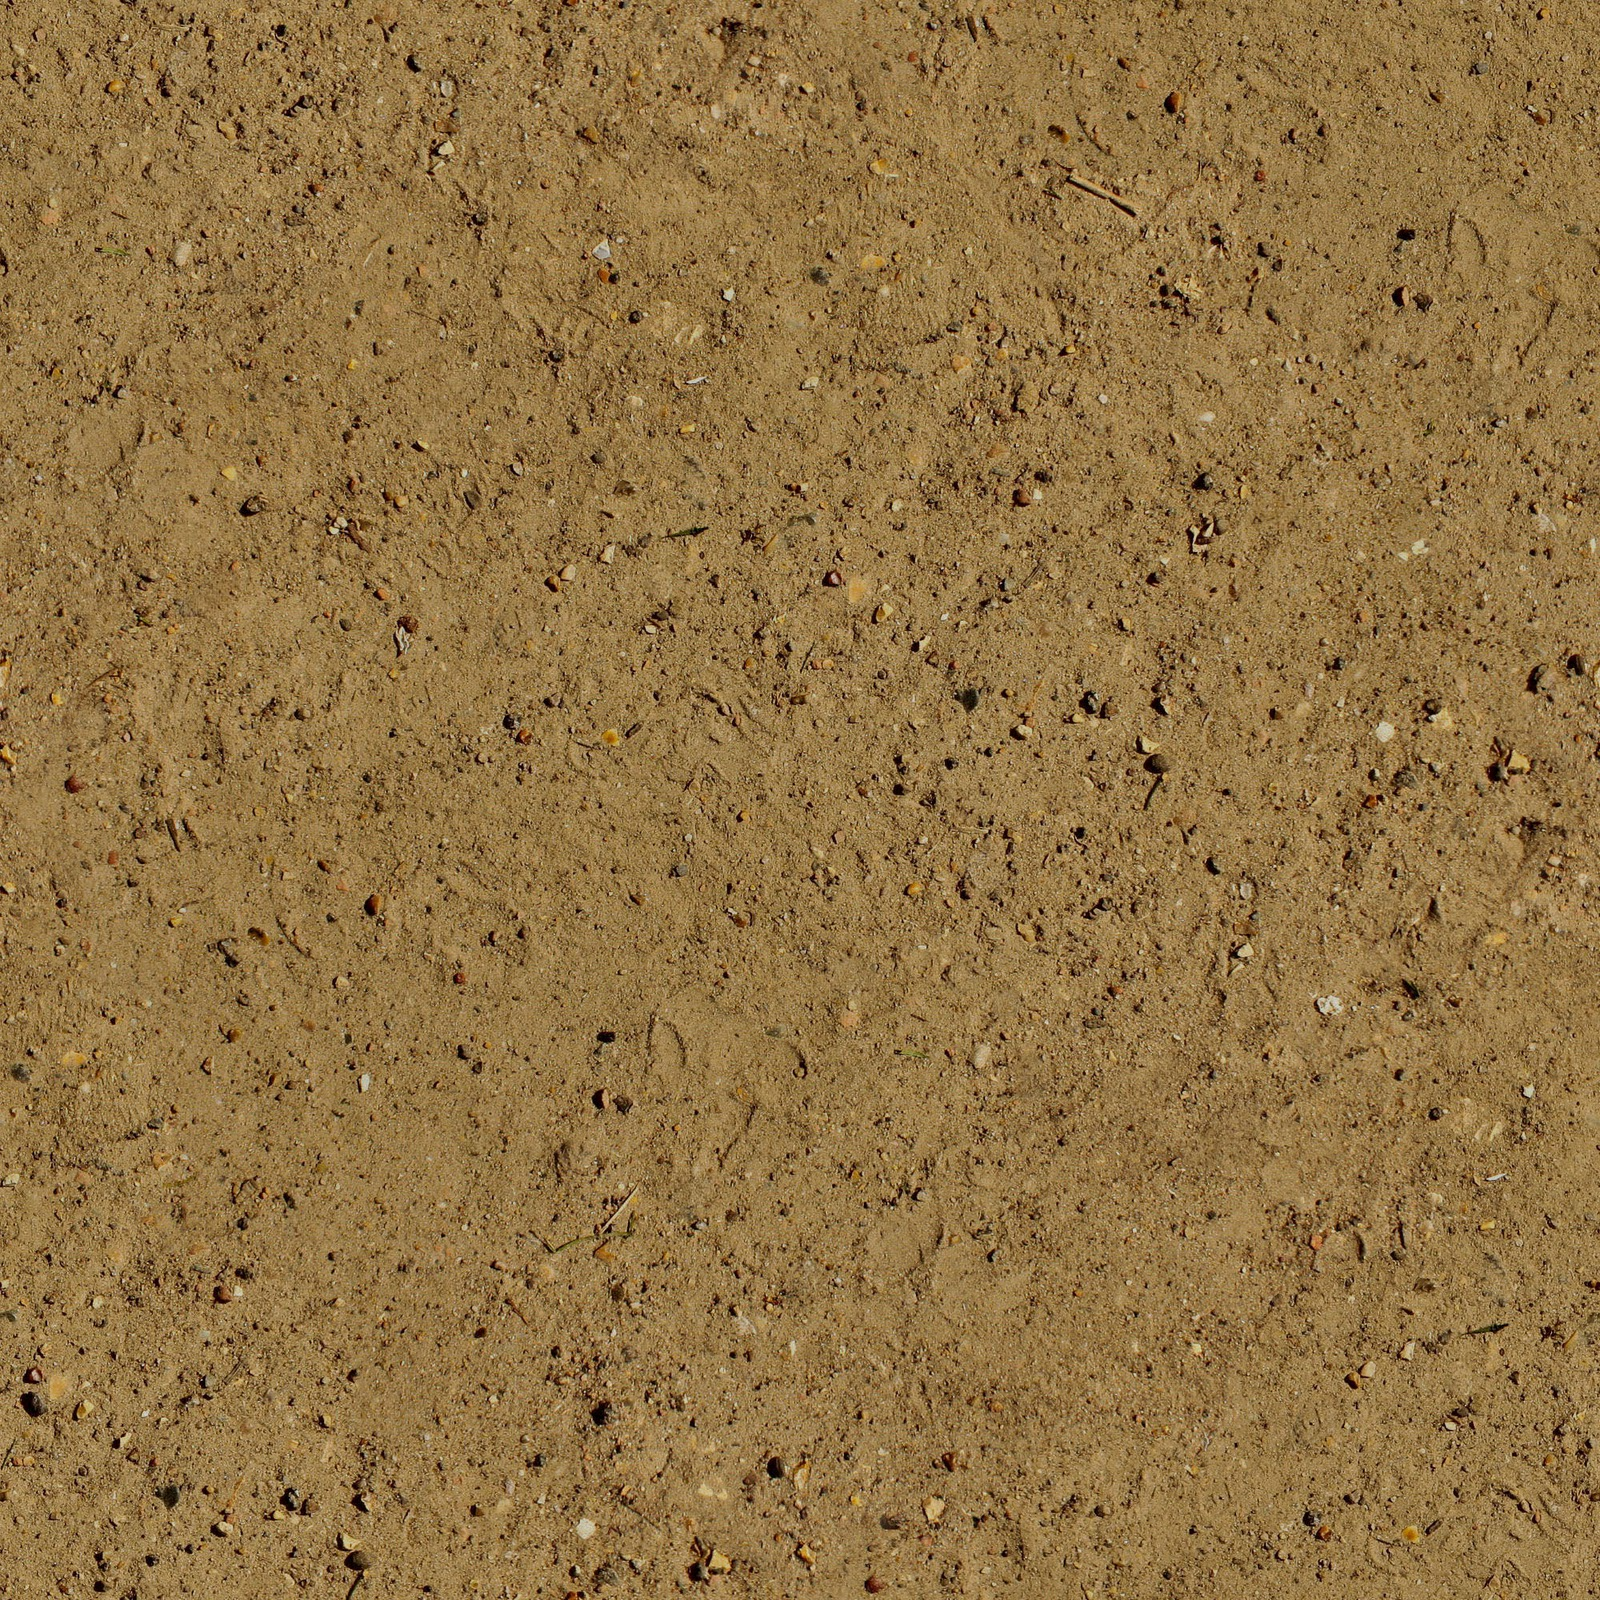 Seamless dirt path texture